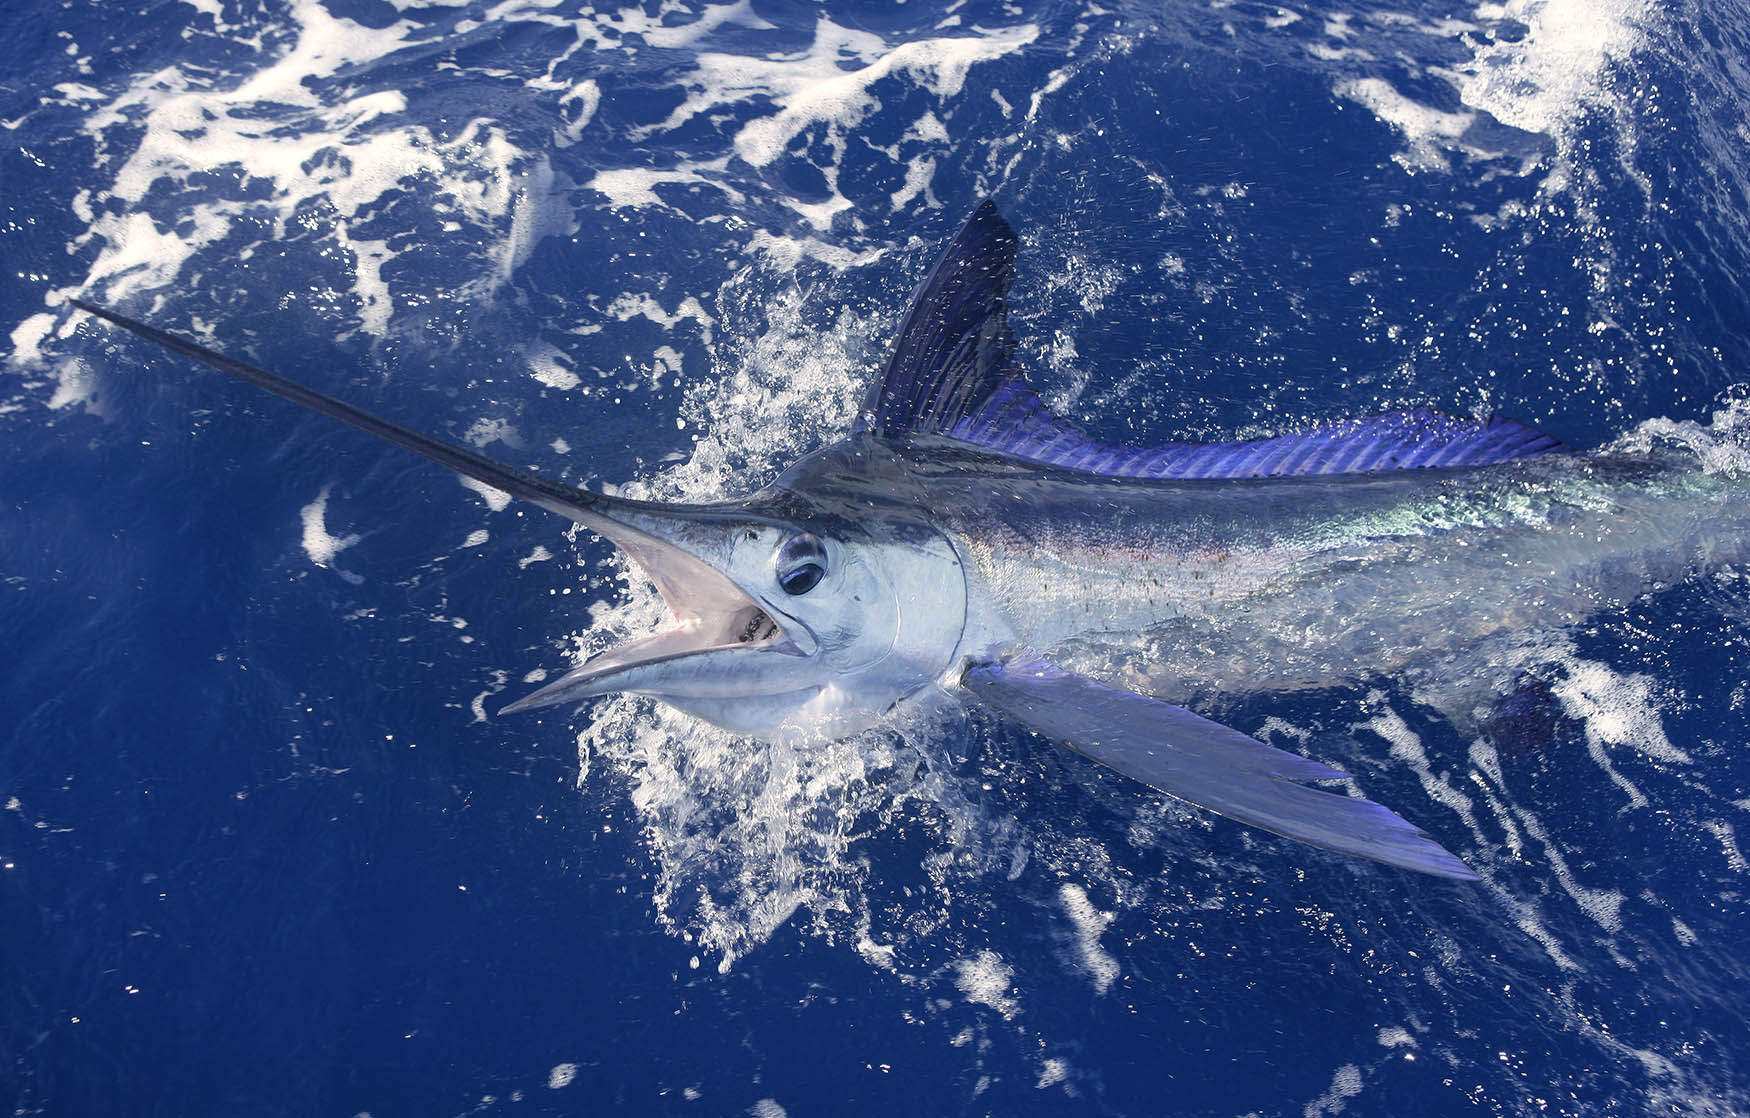 Swordfish are killing sharks on a regular basis, apparently